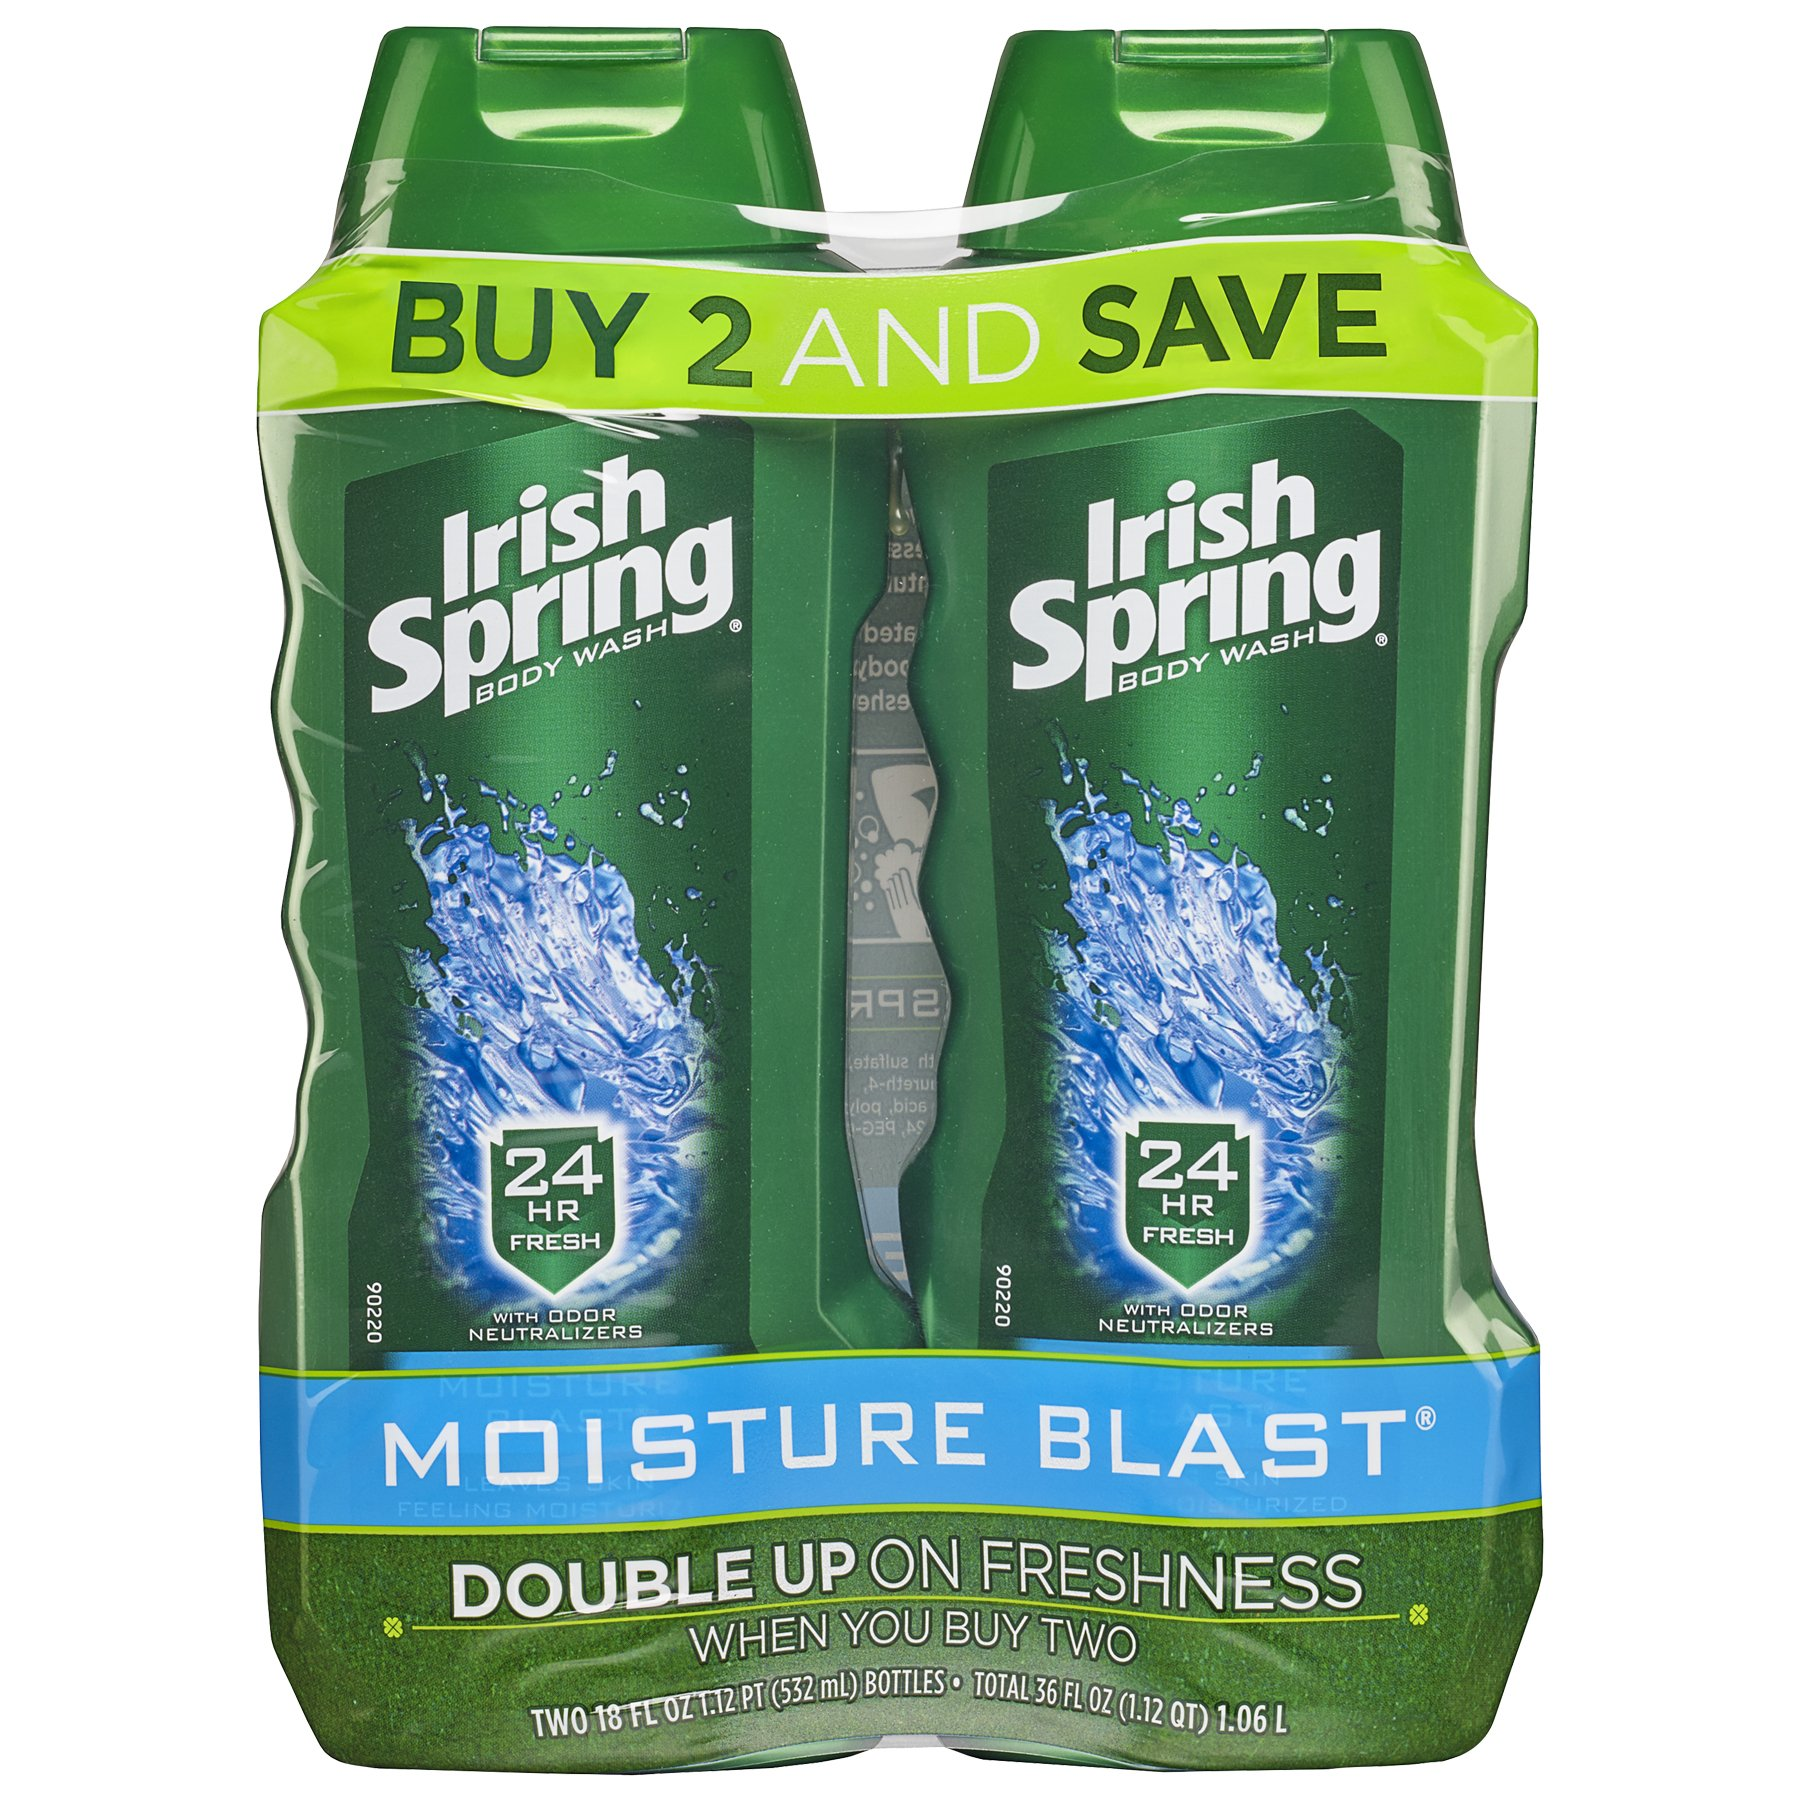 Irish Spring Moisture Blast Moisturizing Body Wash - 18 fluid ounce (2 Pack)